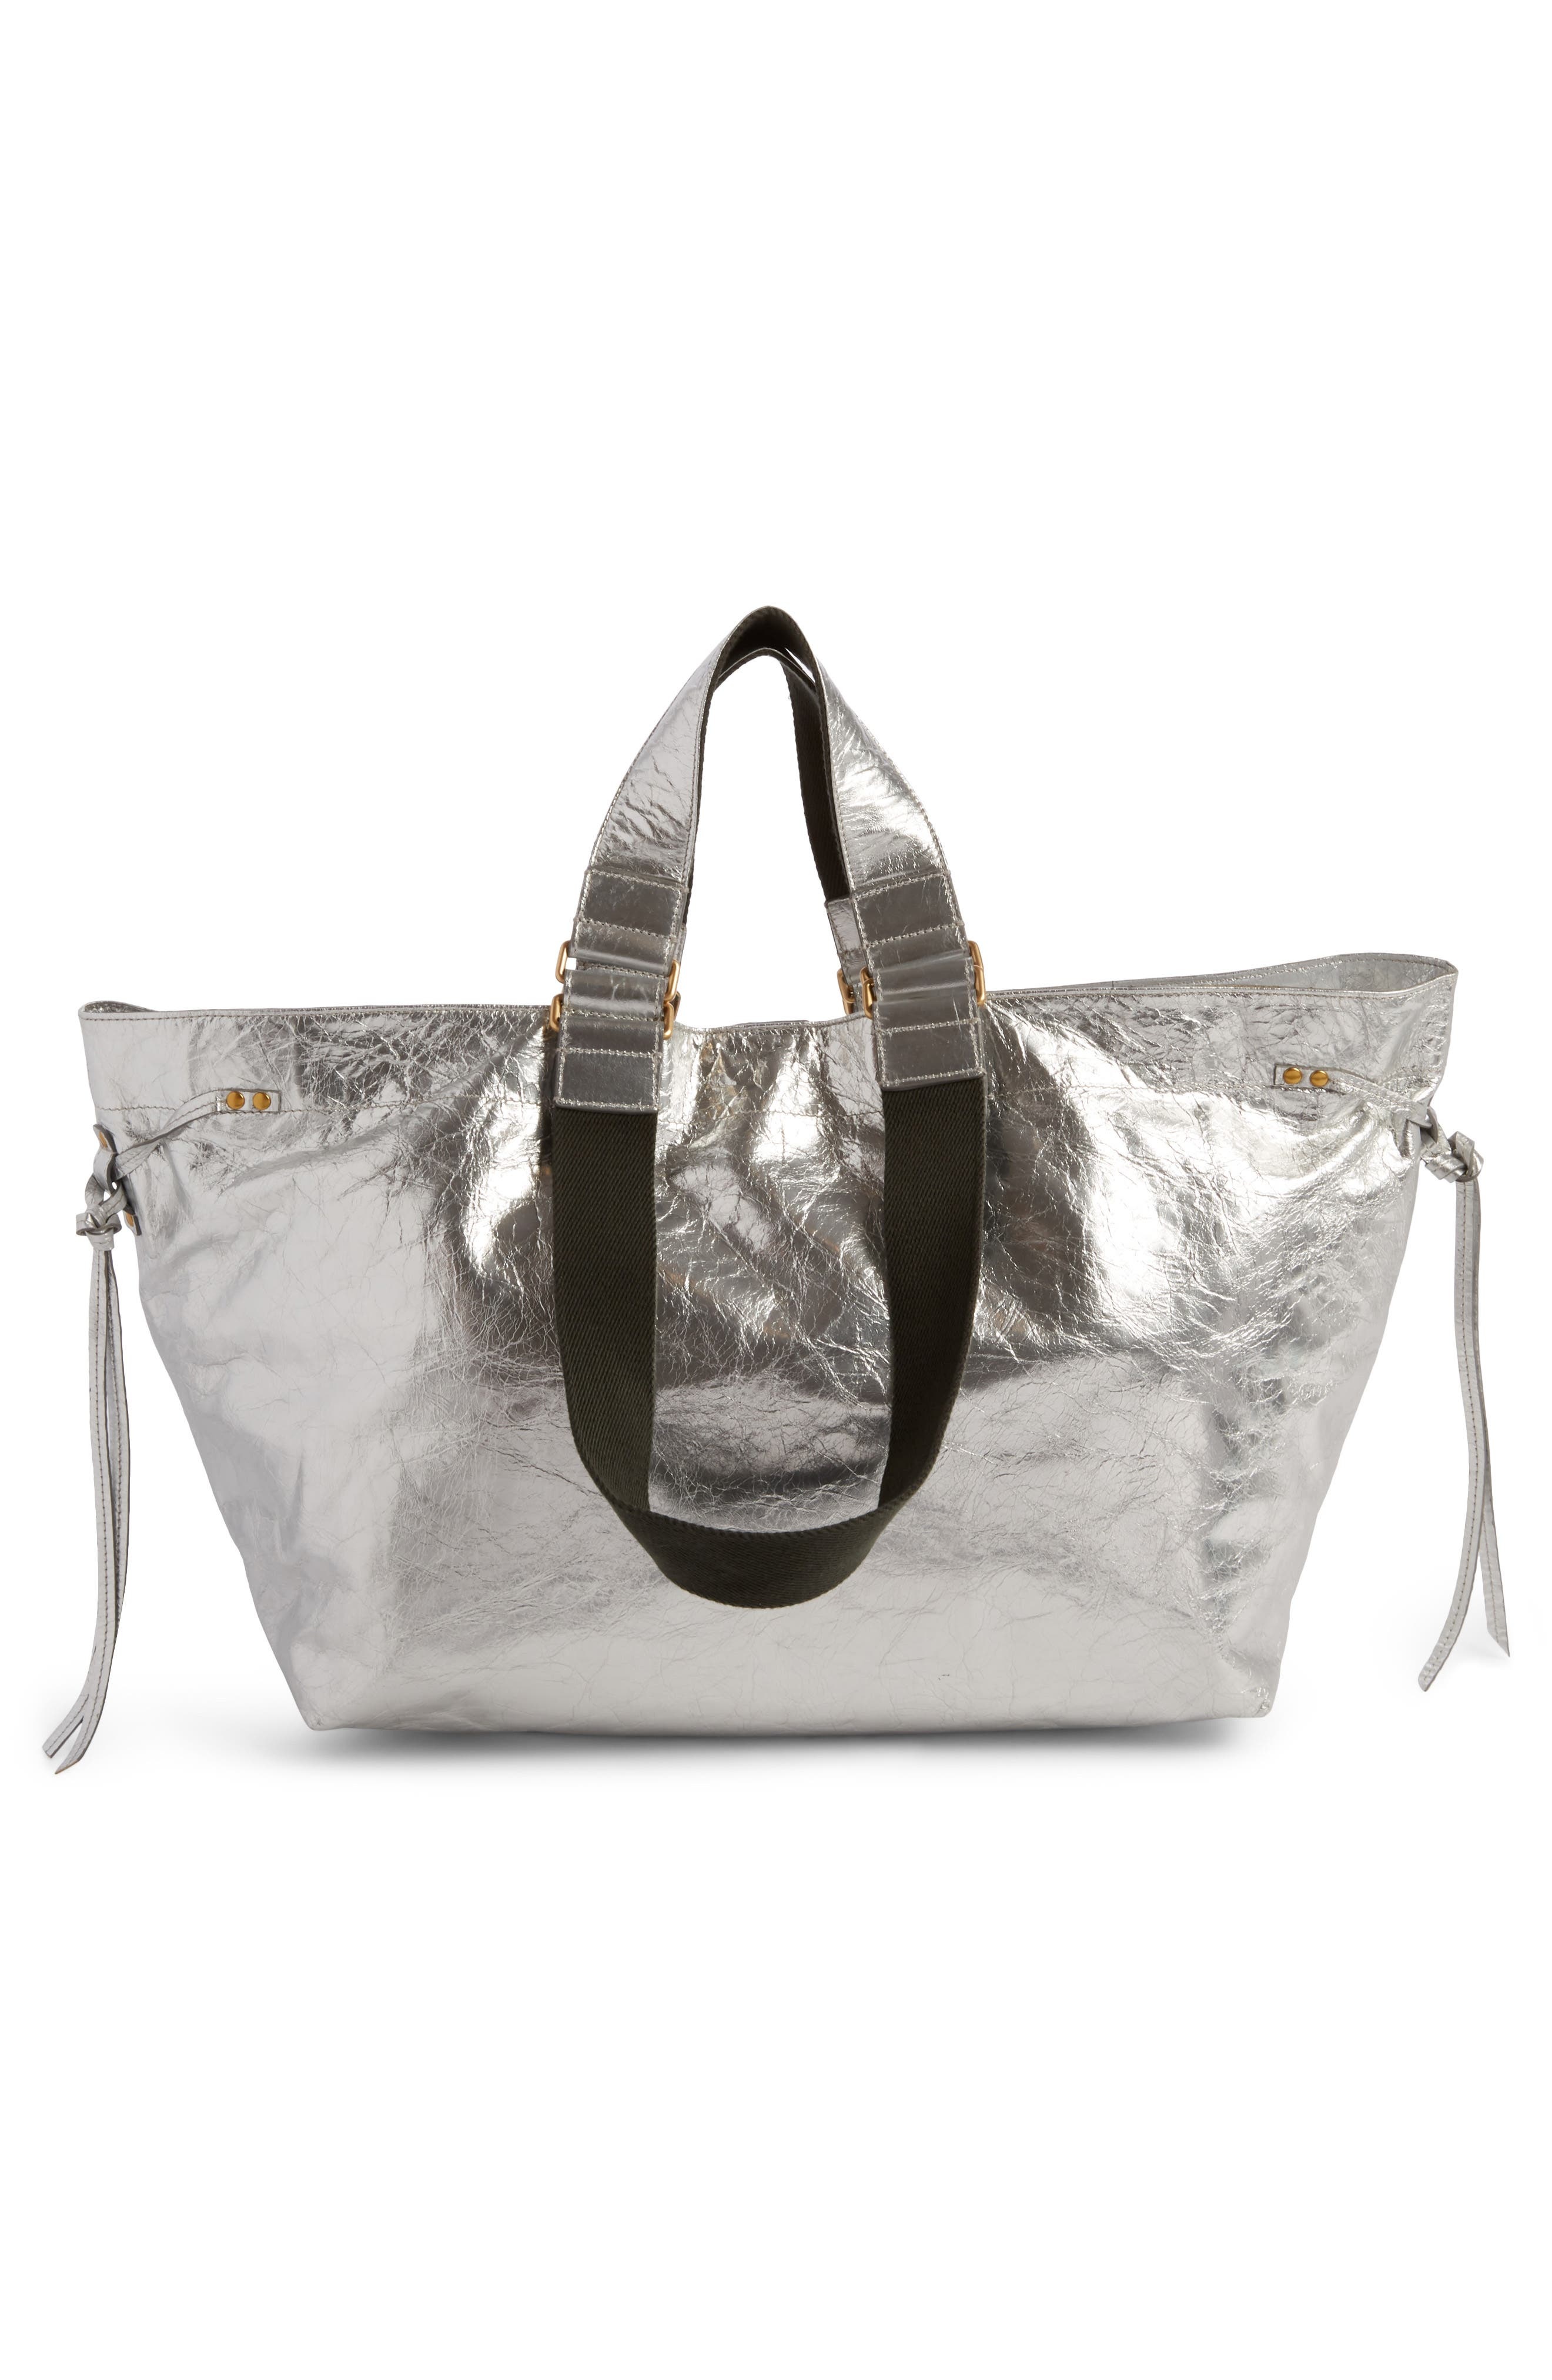 Wardy Metallic Leather Shopper,                             Alternate thumbnail 2, color,                             040